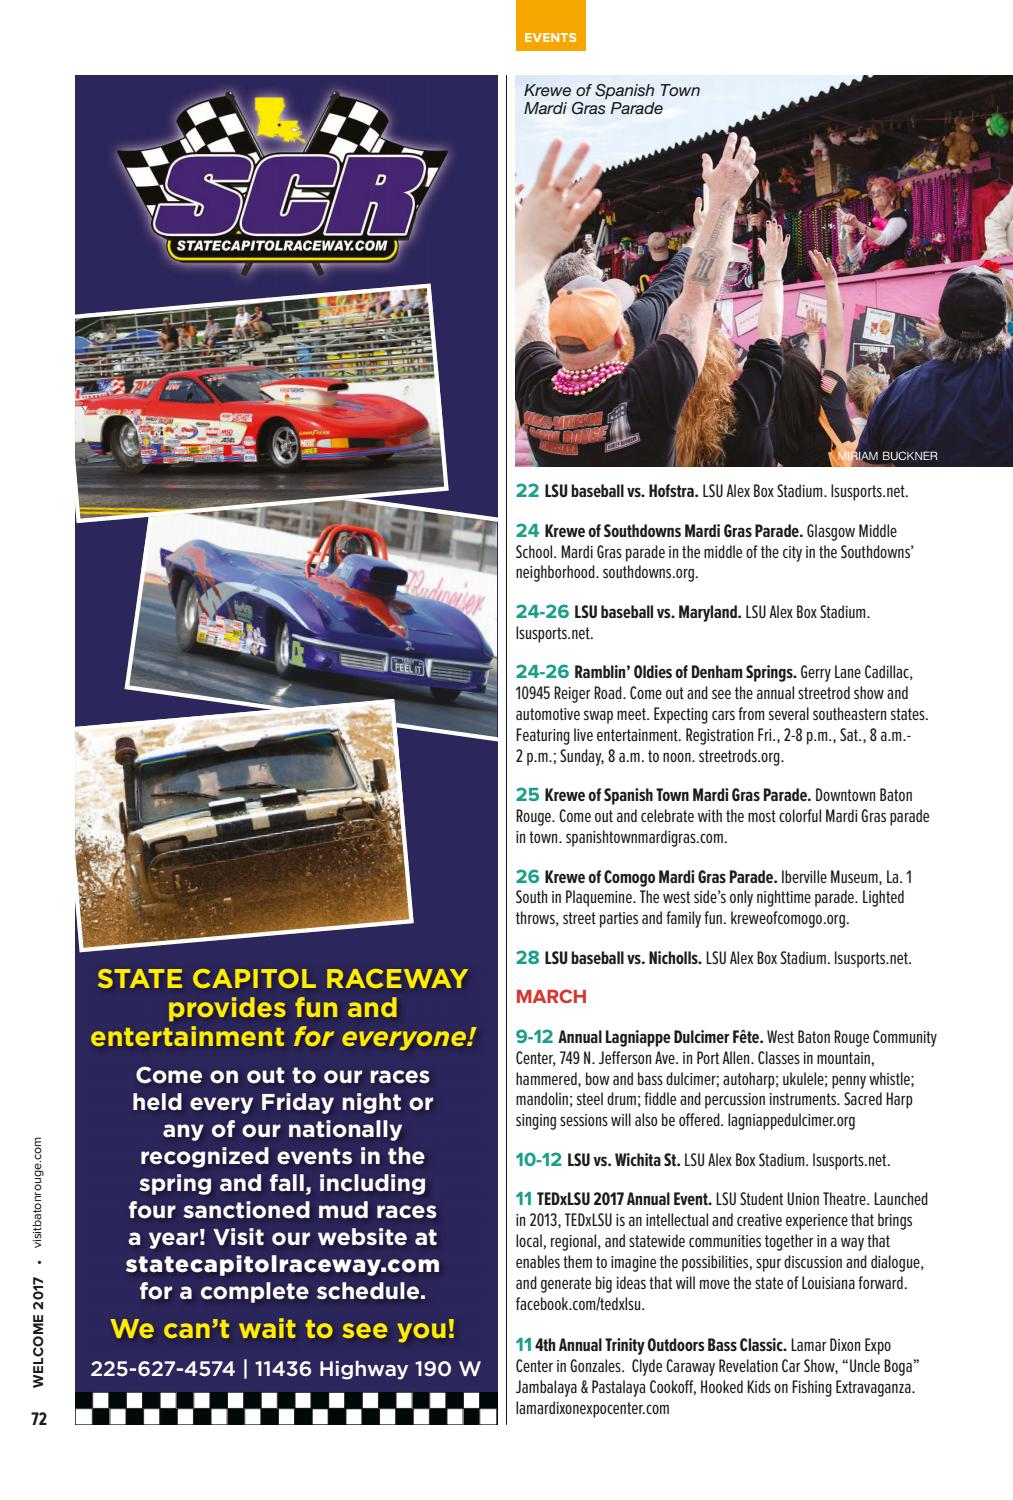 Welcome The Official Visitors Guide To Greater Baton Rouge By - Fun car show ideas